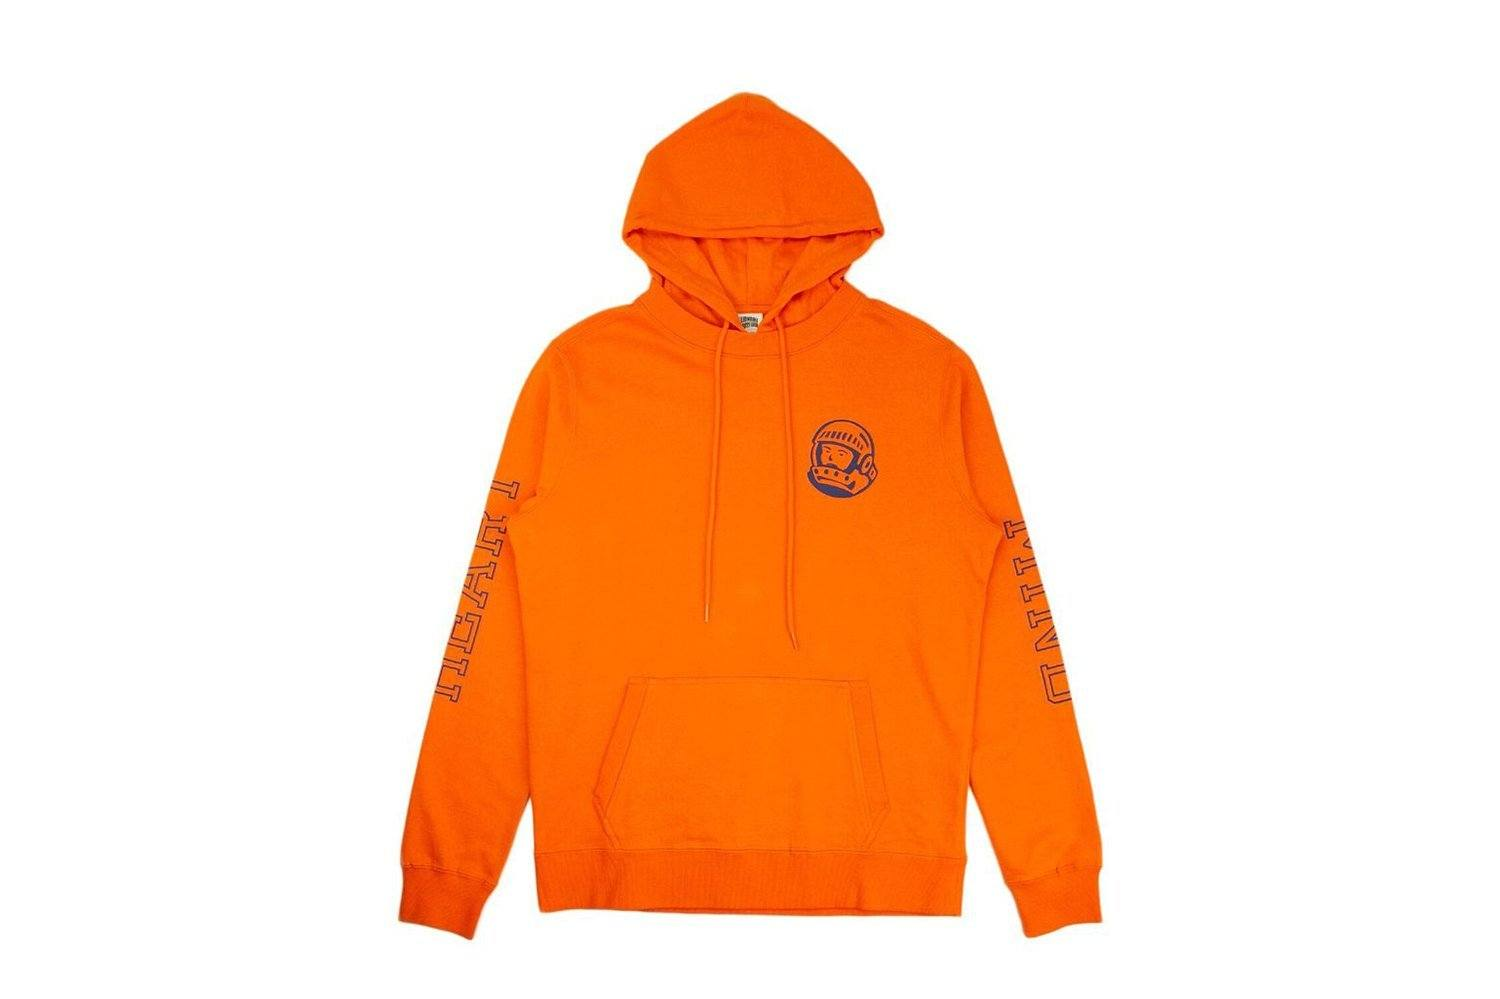 BB HEARTMIND HOODIE - 891-7307 MENS SOFTGOODS BILLIONAIRE BOYS CLUB